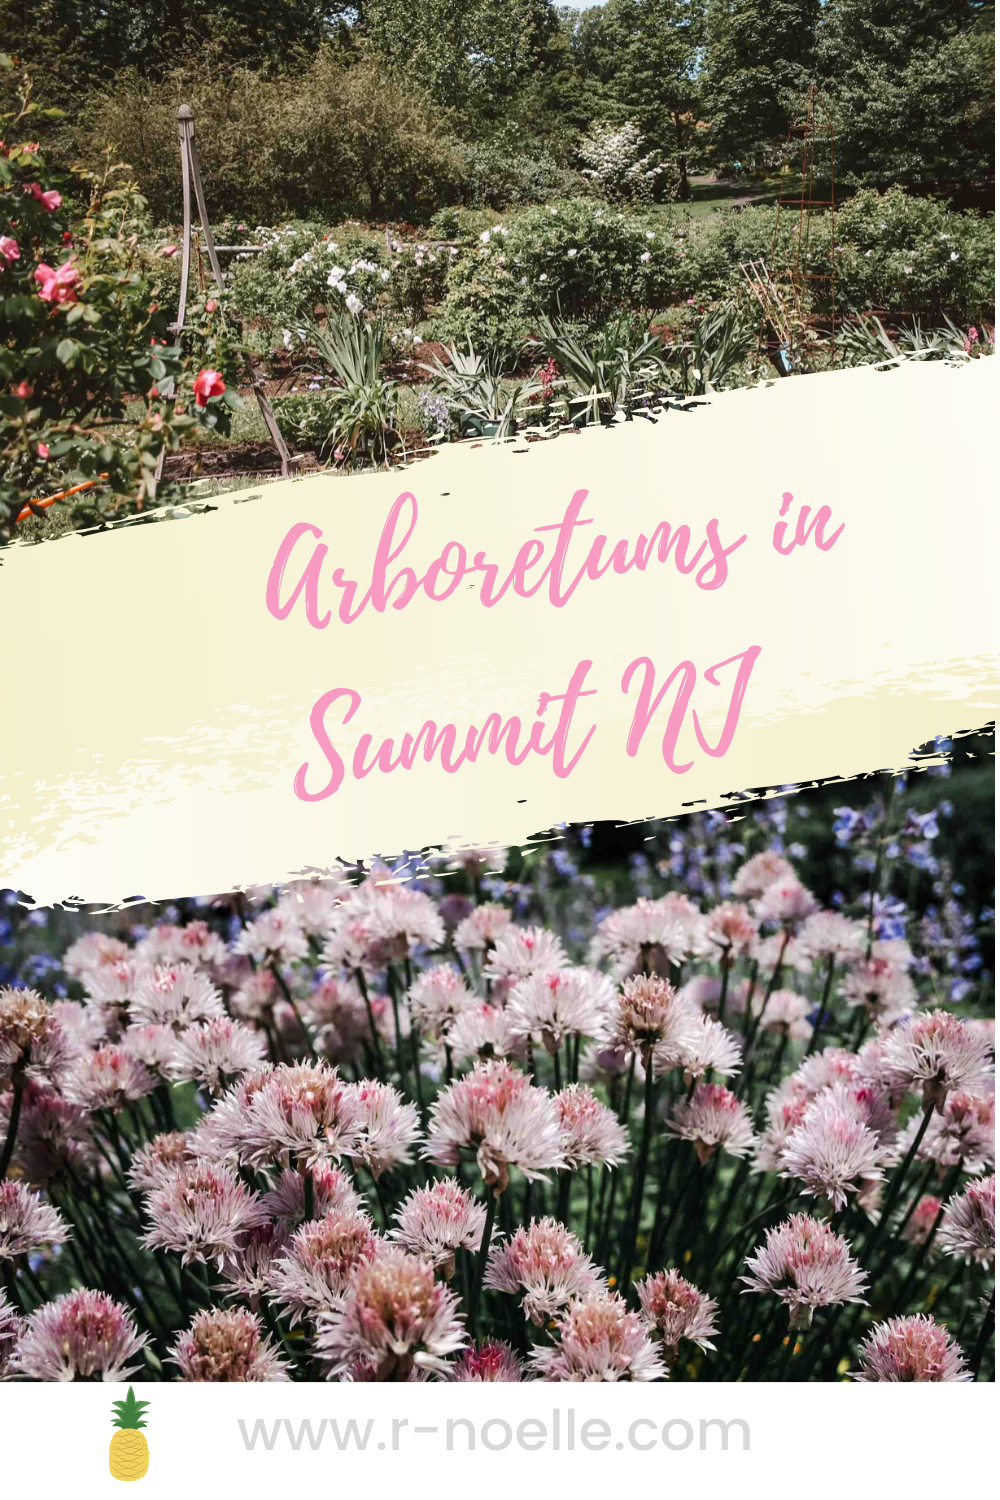 These outdoor arboretums in Summit, NJ are great spots for photoshops. Come here to explore, have a picnic and make a day of it.